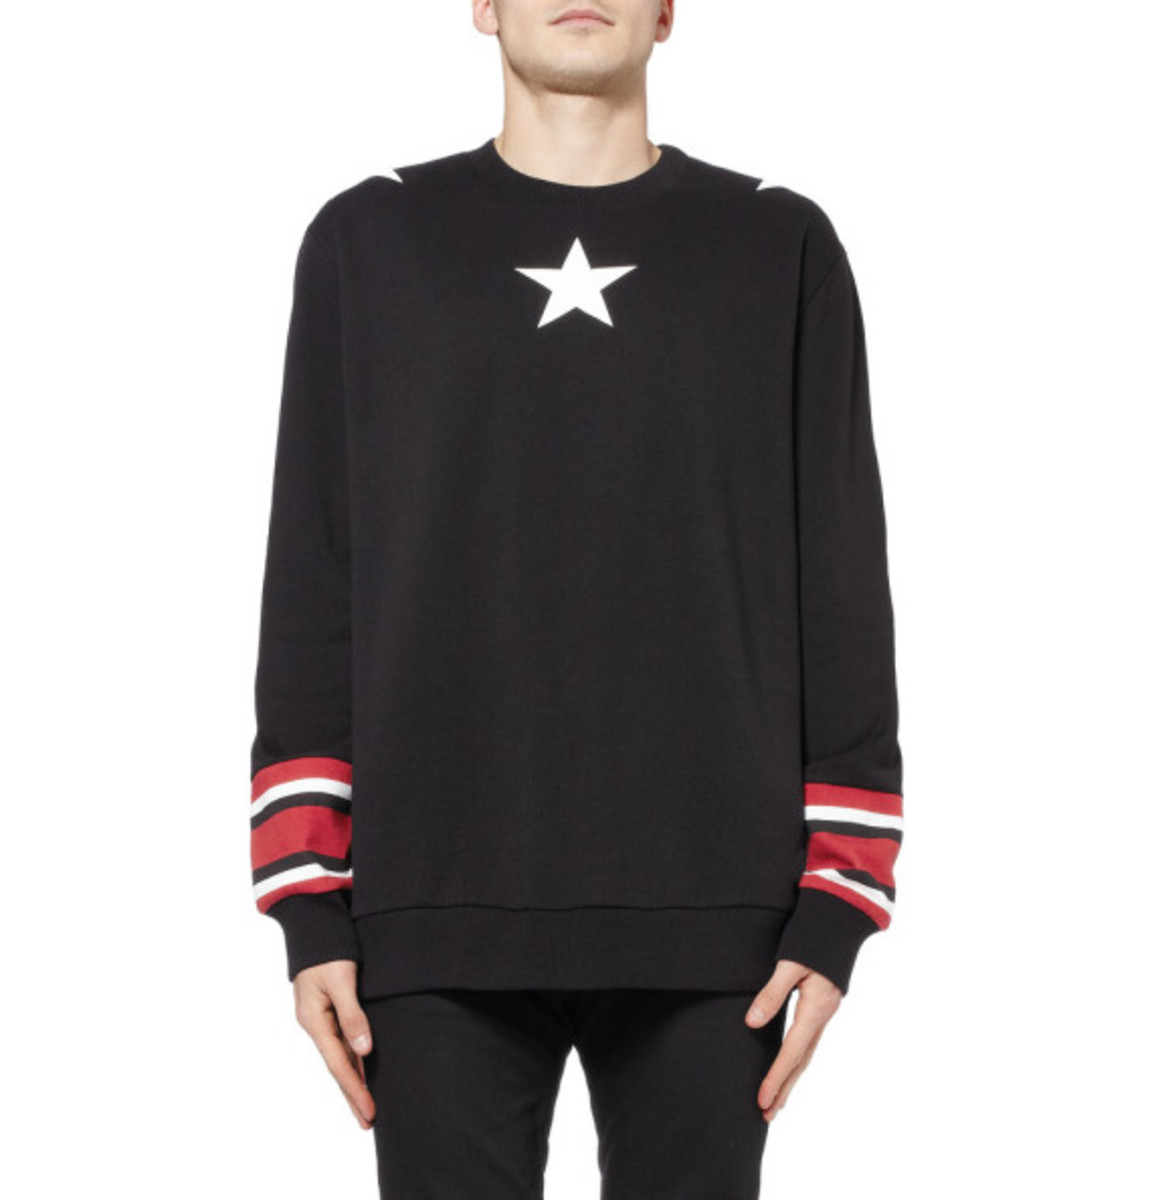 givenchy-star-printed-striped-cotton-sweatshirt-02